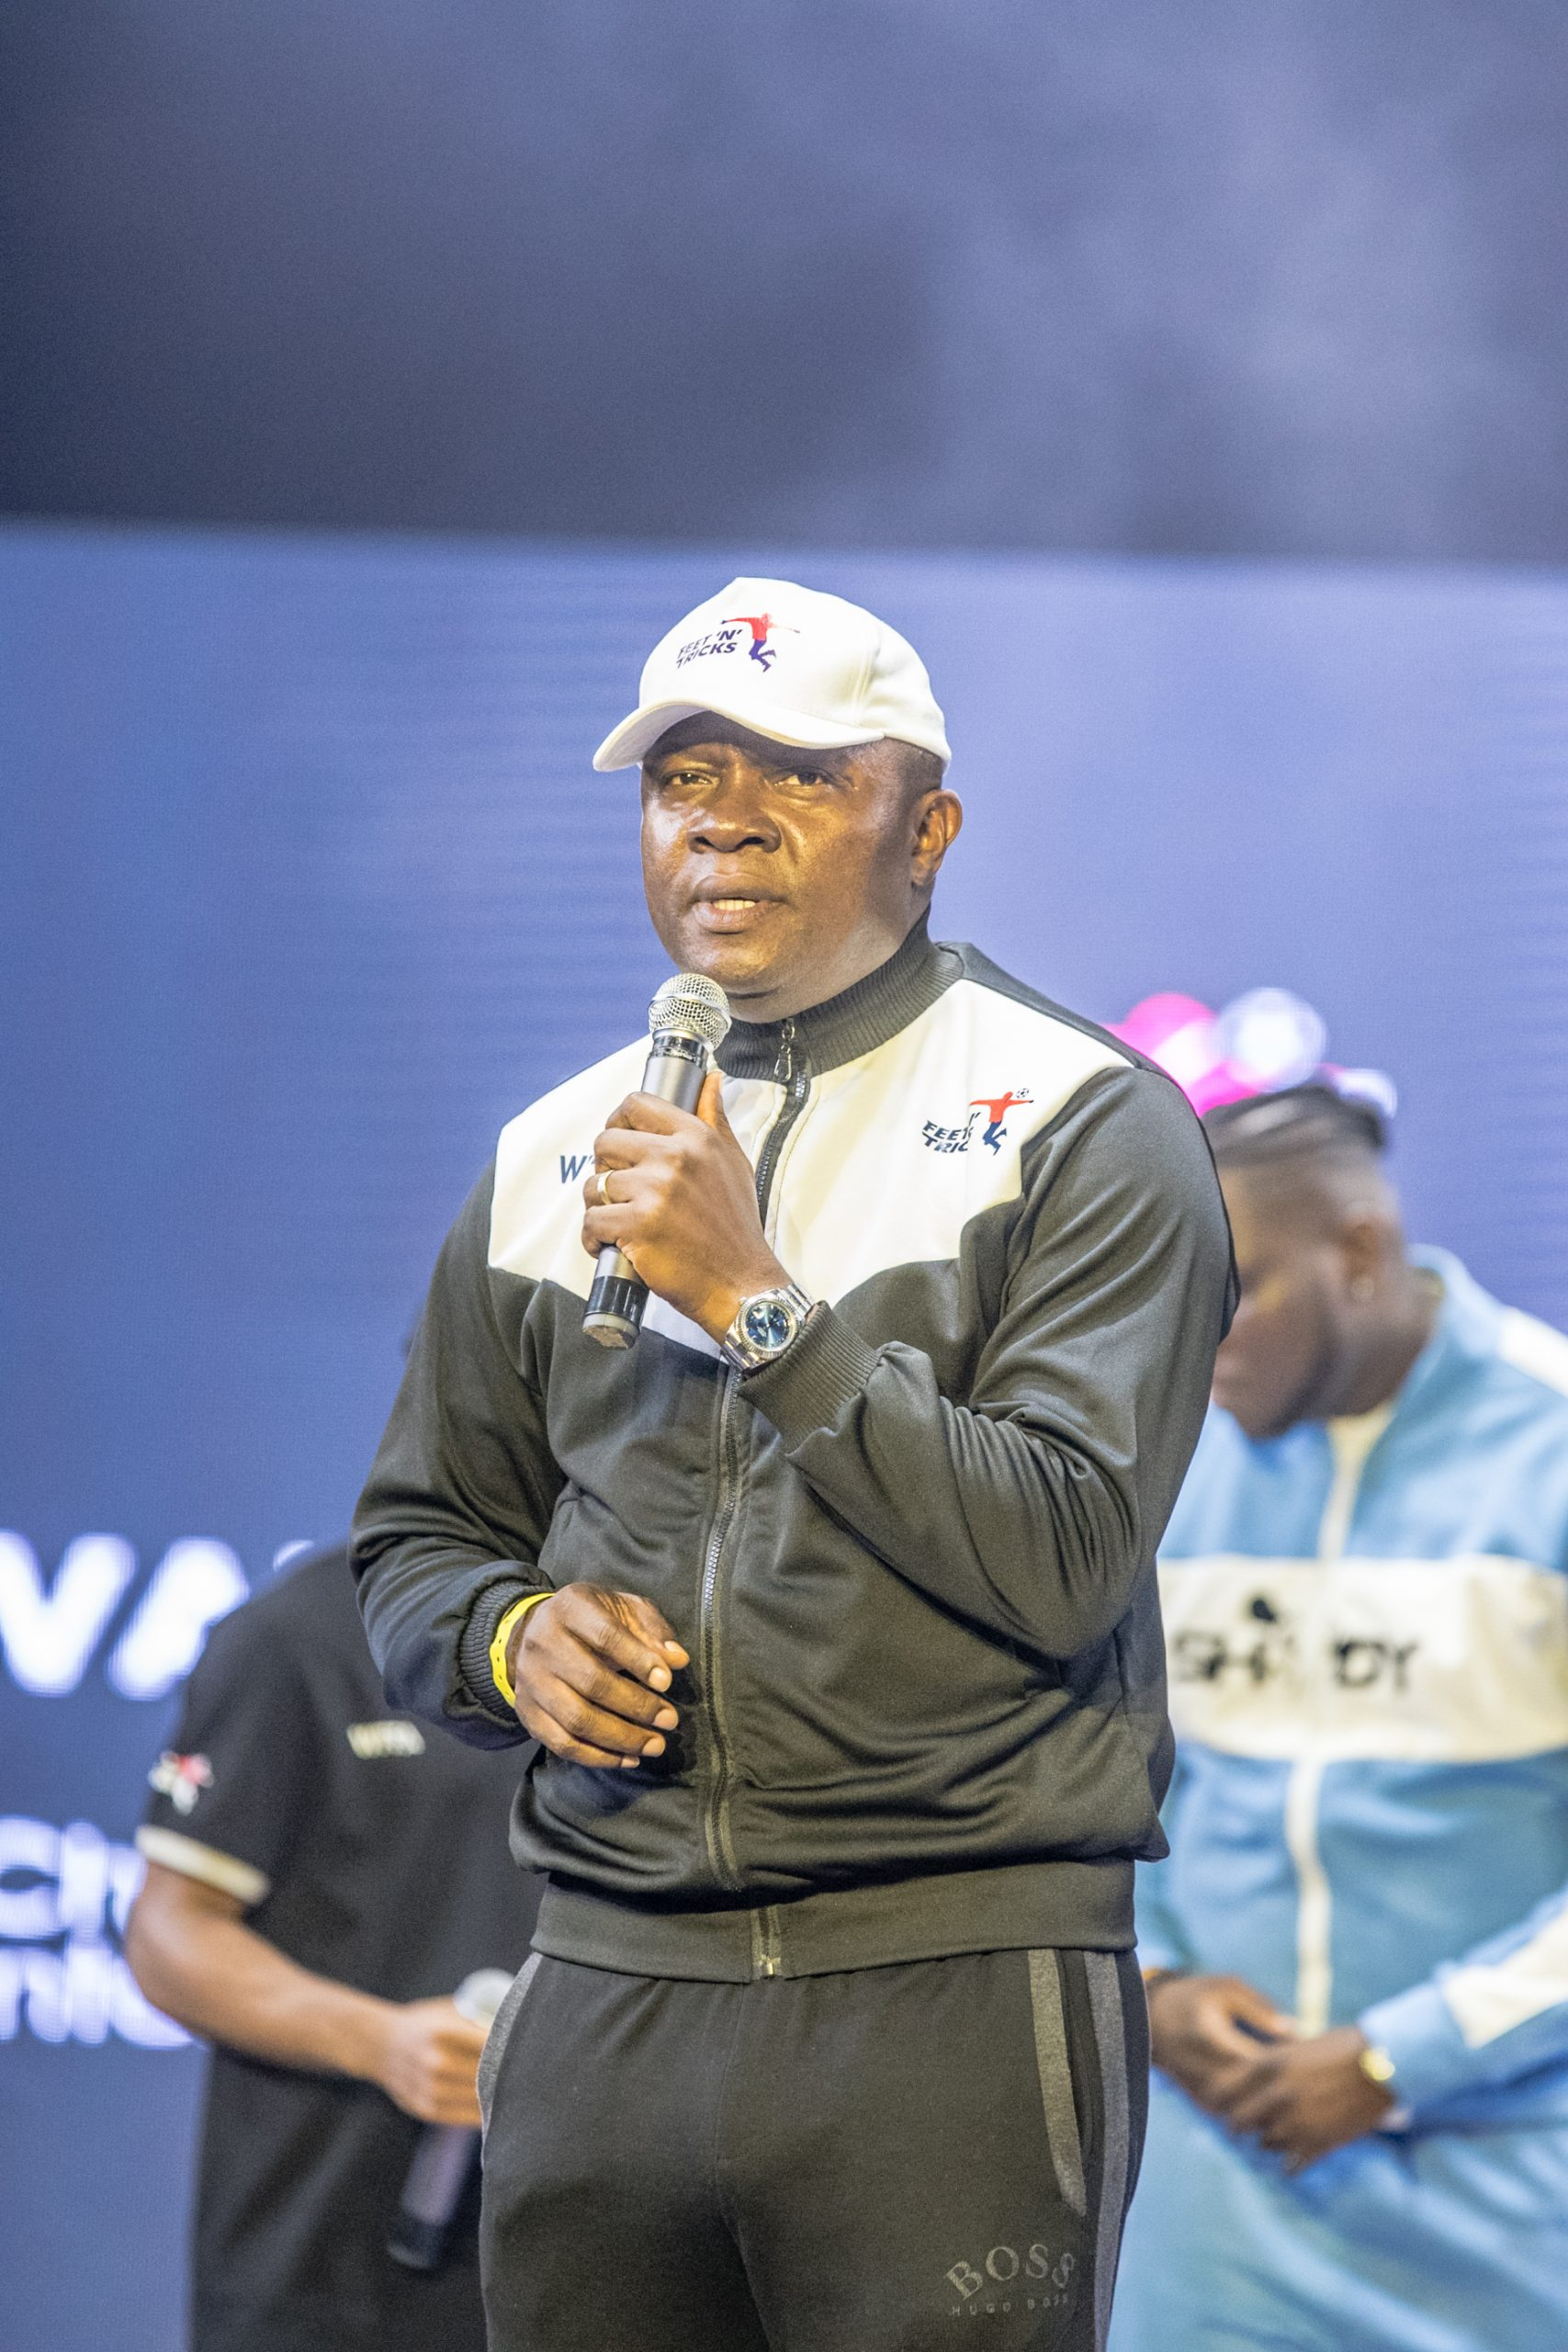 Mr. Valentine Ozigbo speaks on growing freestyle football in Africa